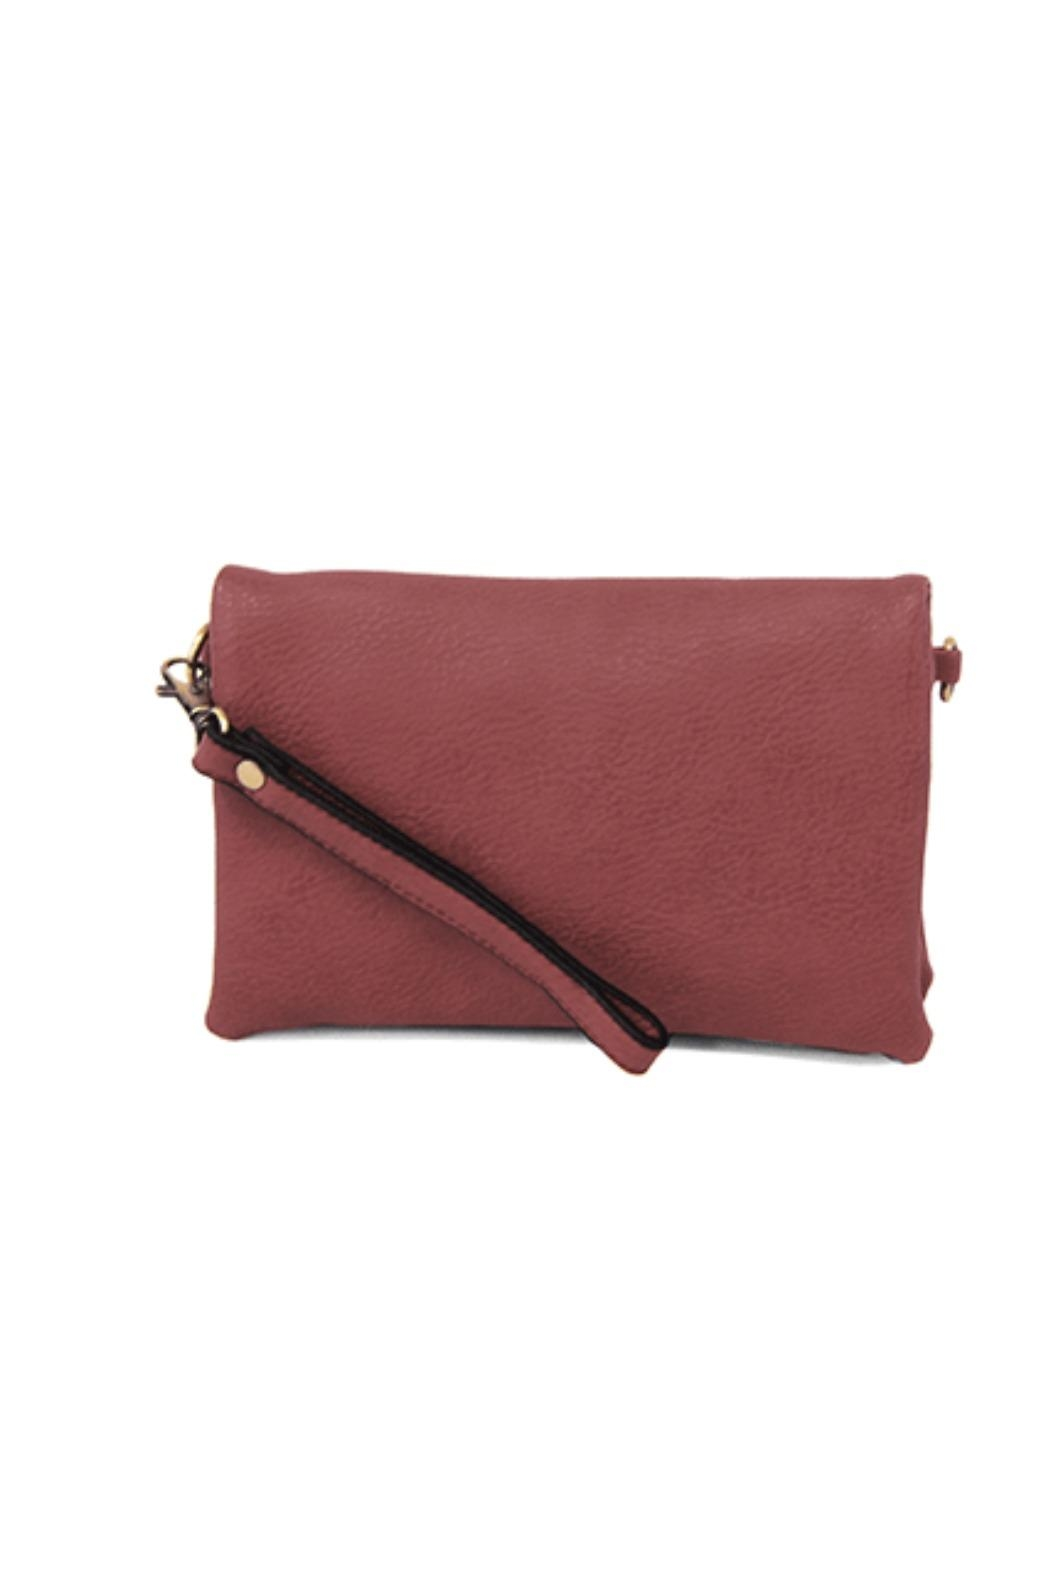 Joy Susan Accessories Kate Crossbody Clutch - Main Image